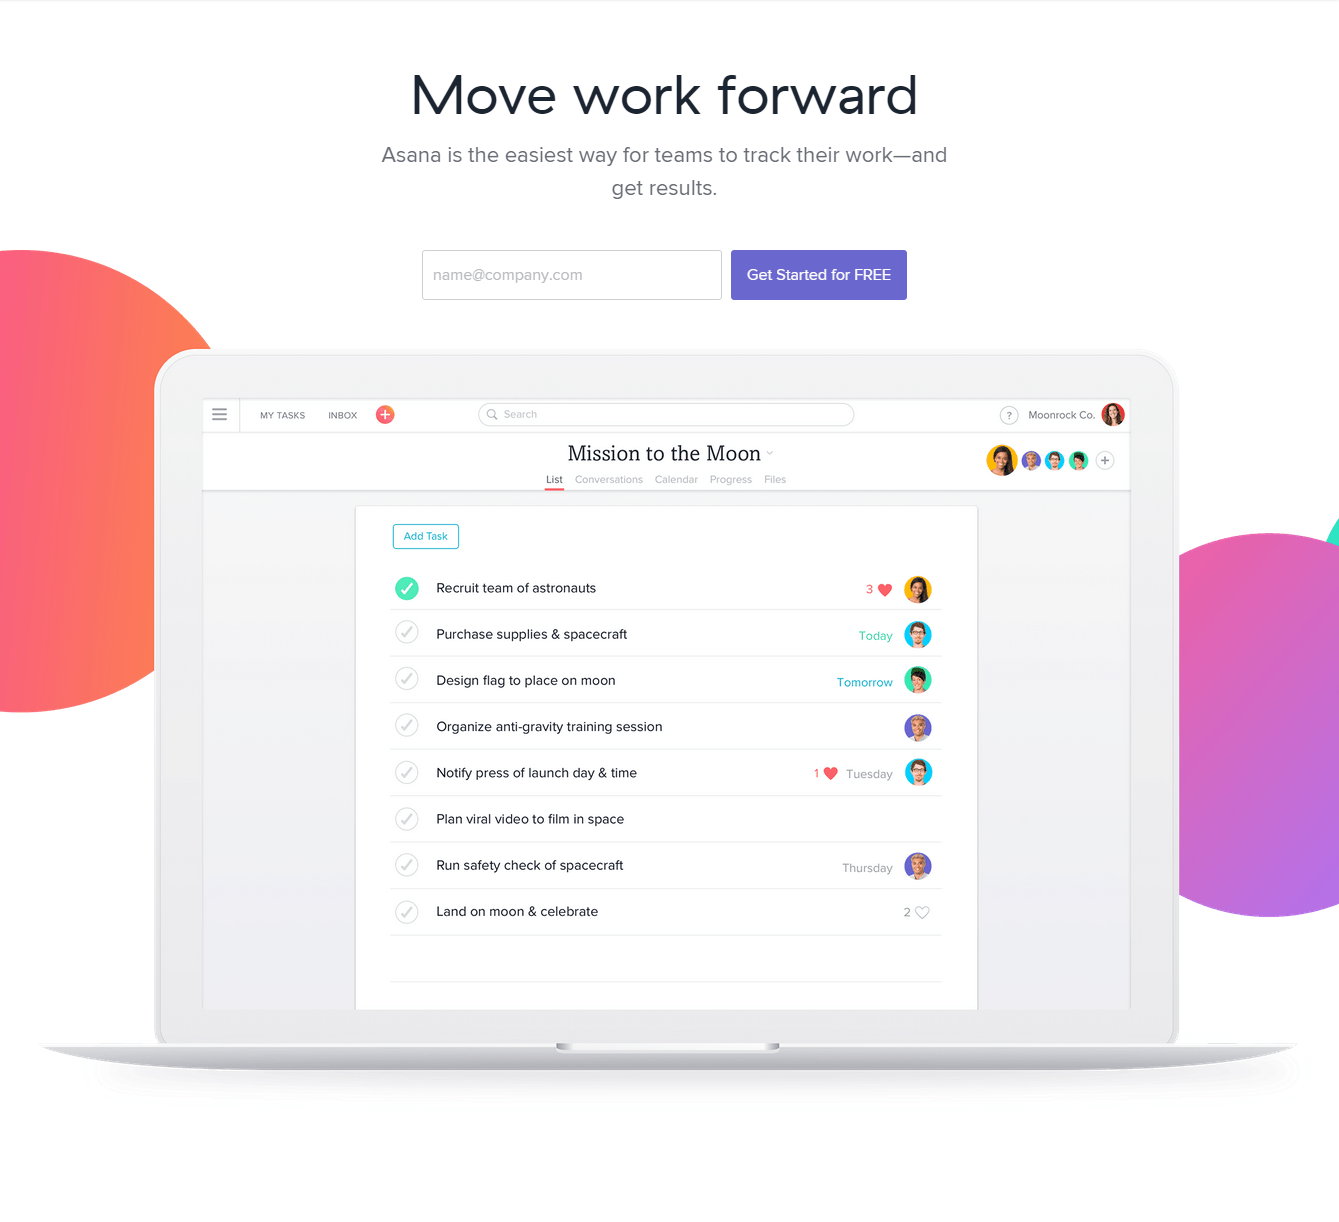 Asana shows how to use graphics on its landing page to demonstrate its product features.